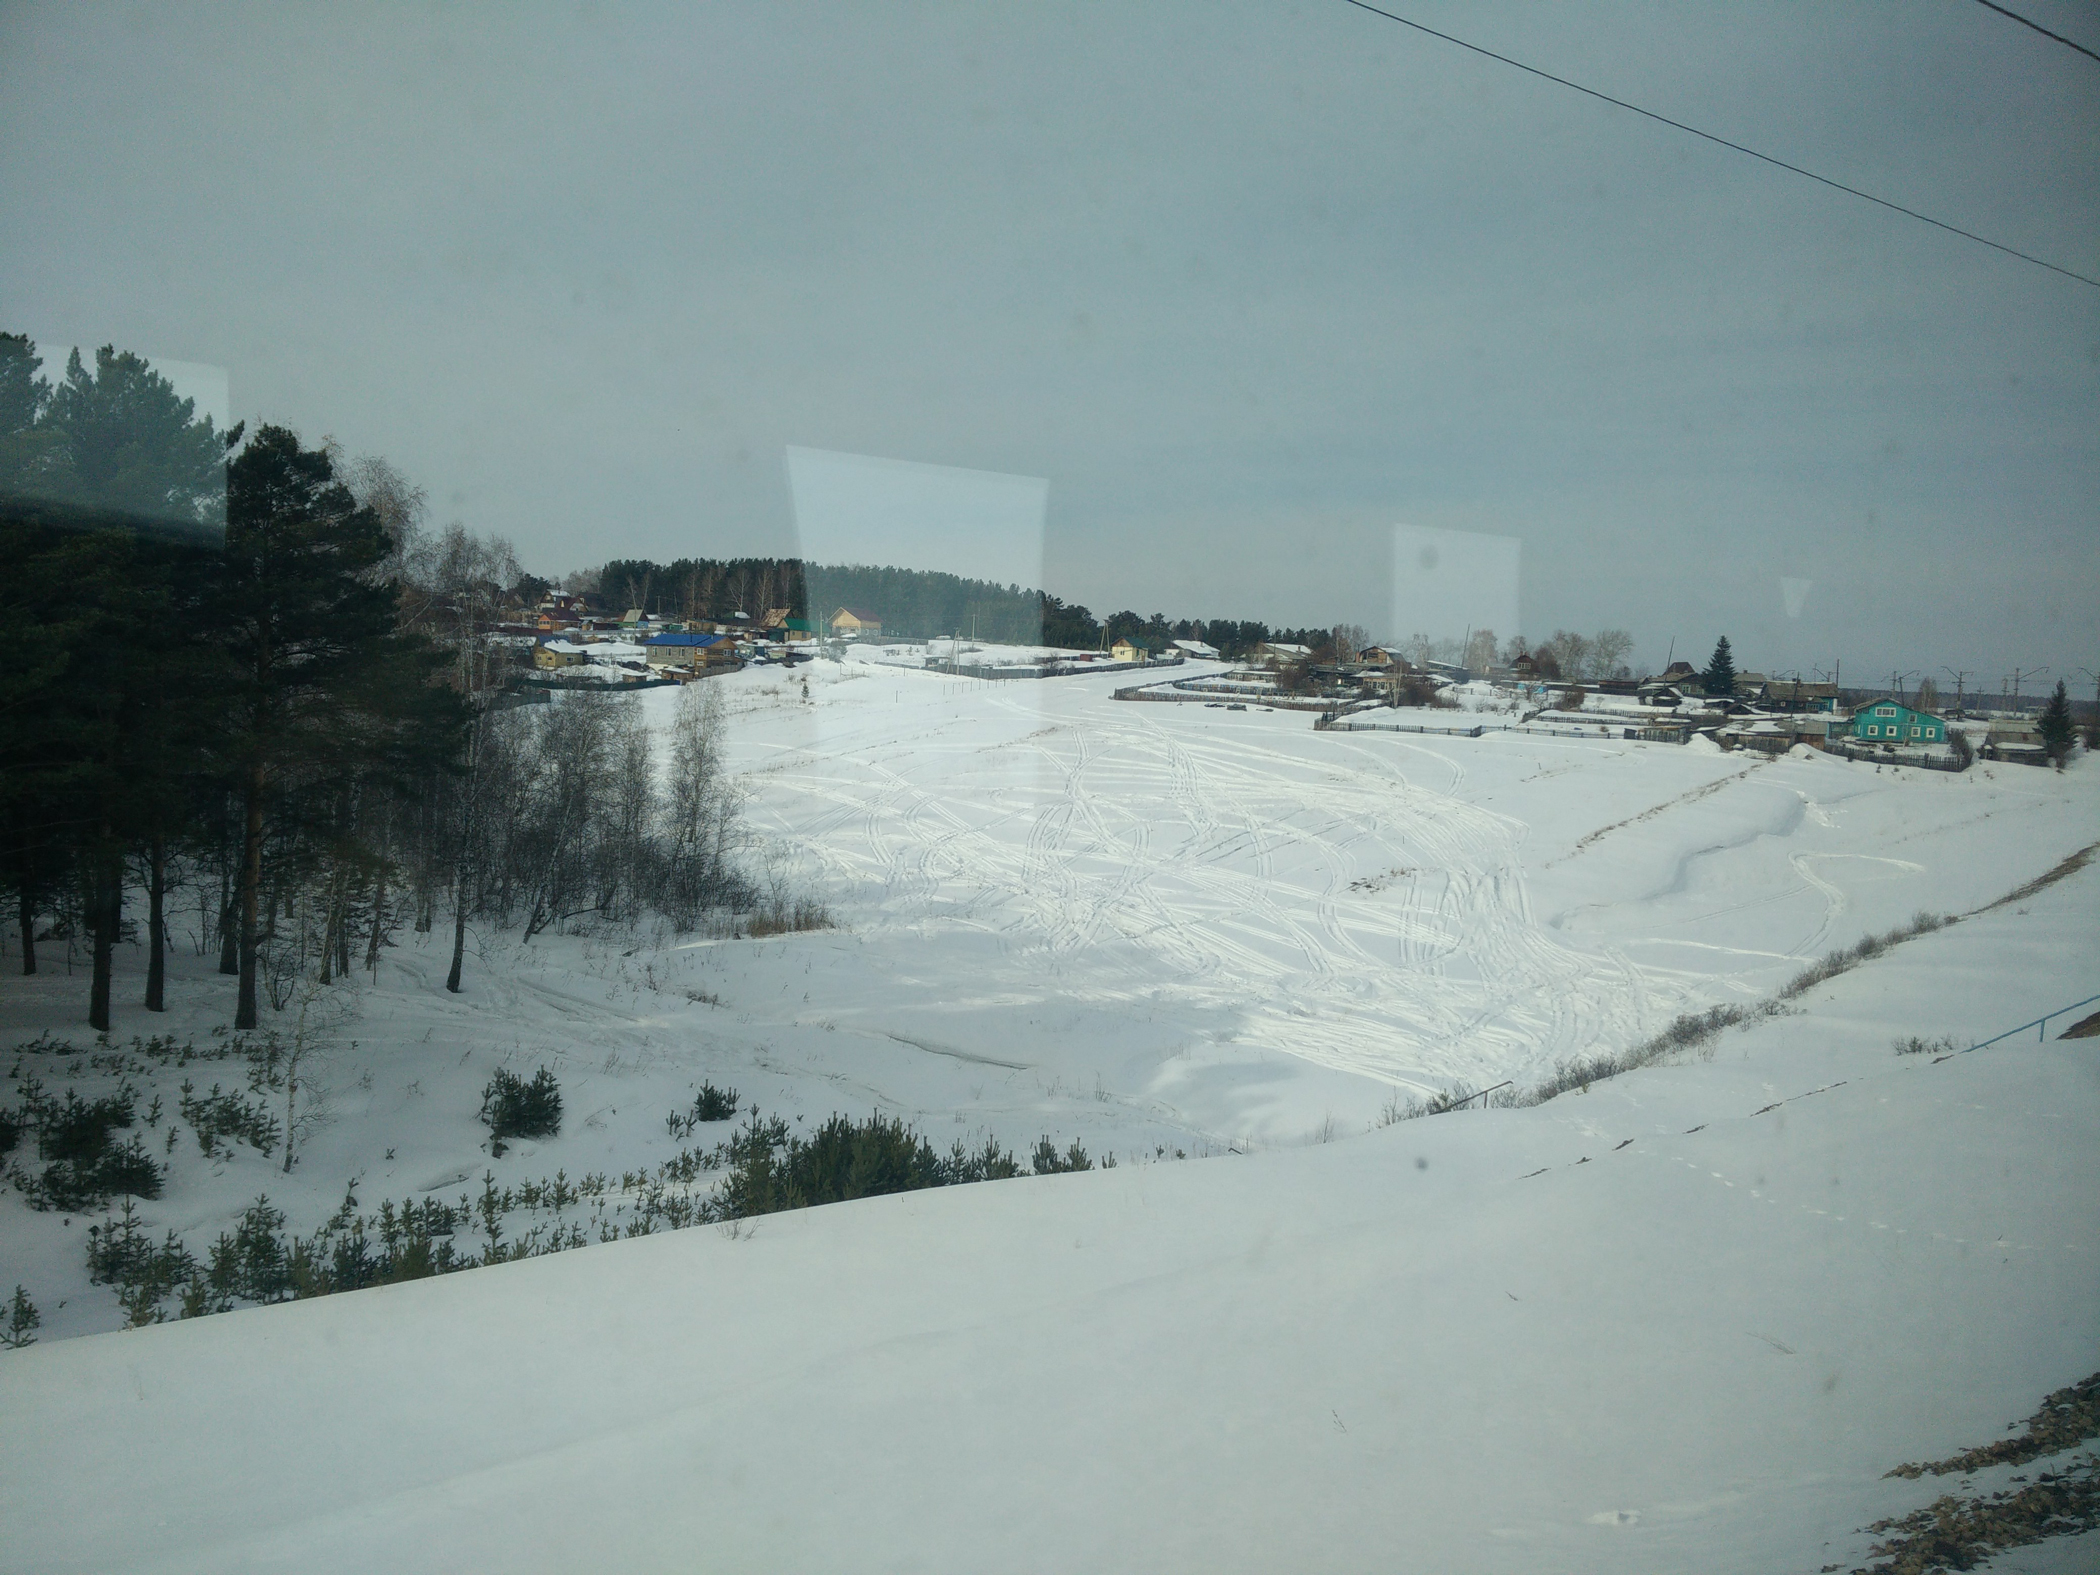 The view from the train passing between Moscow and Irkutsk on the Trans-Siberian Railway.